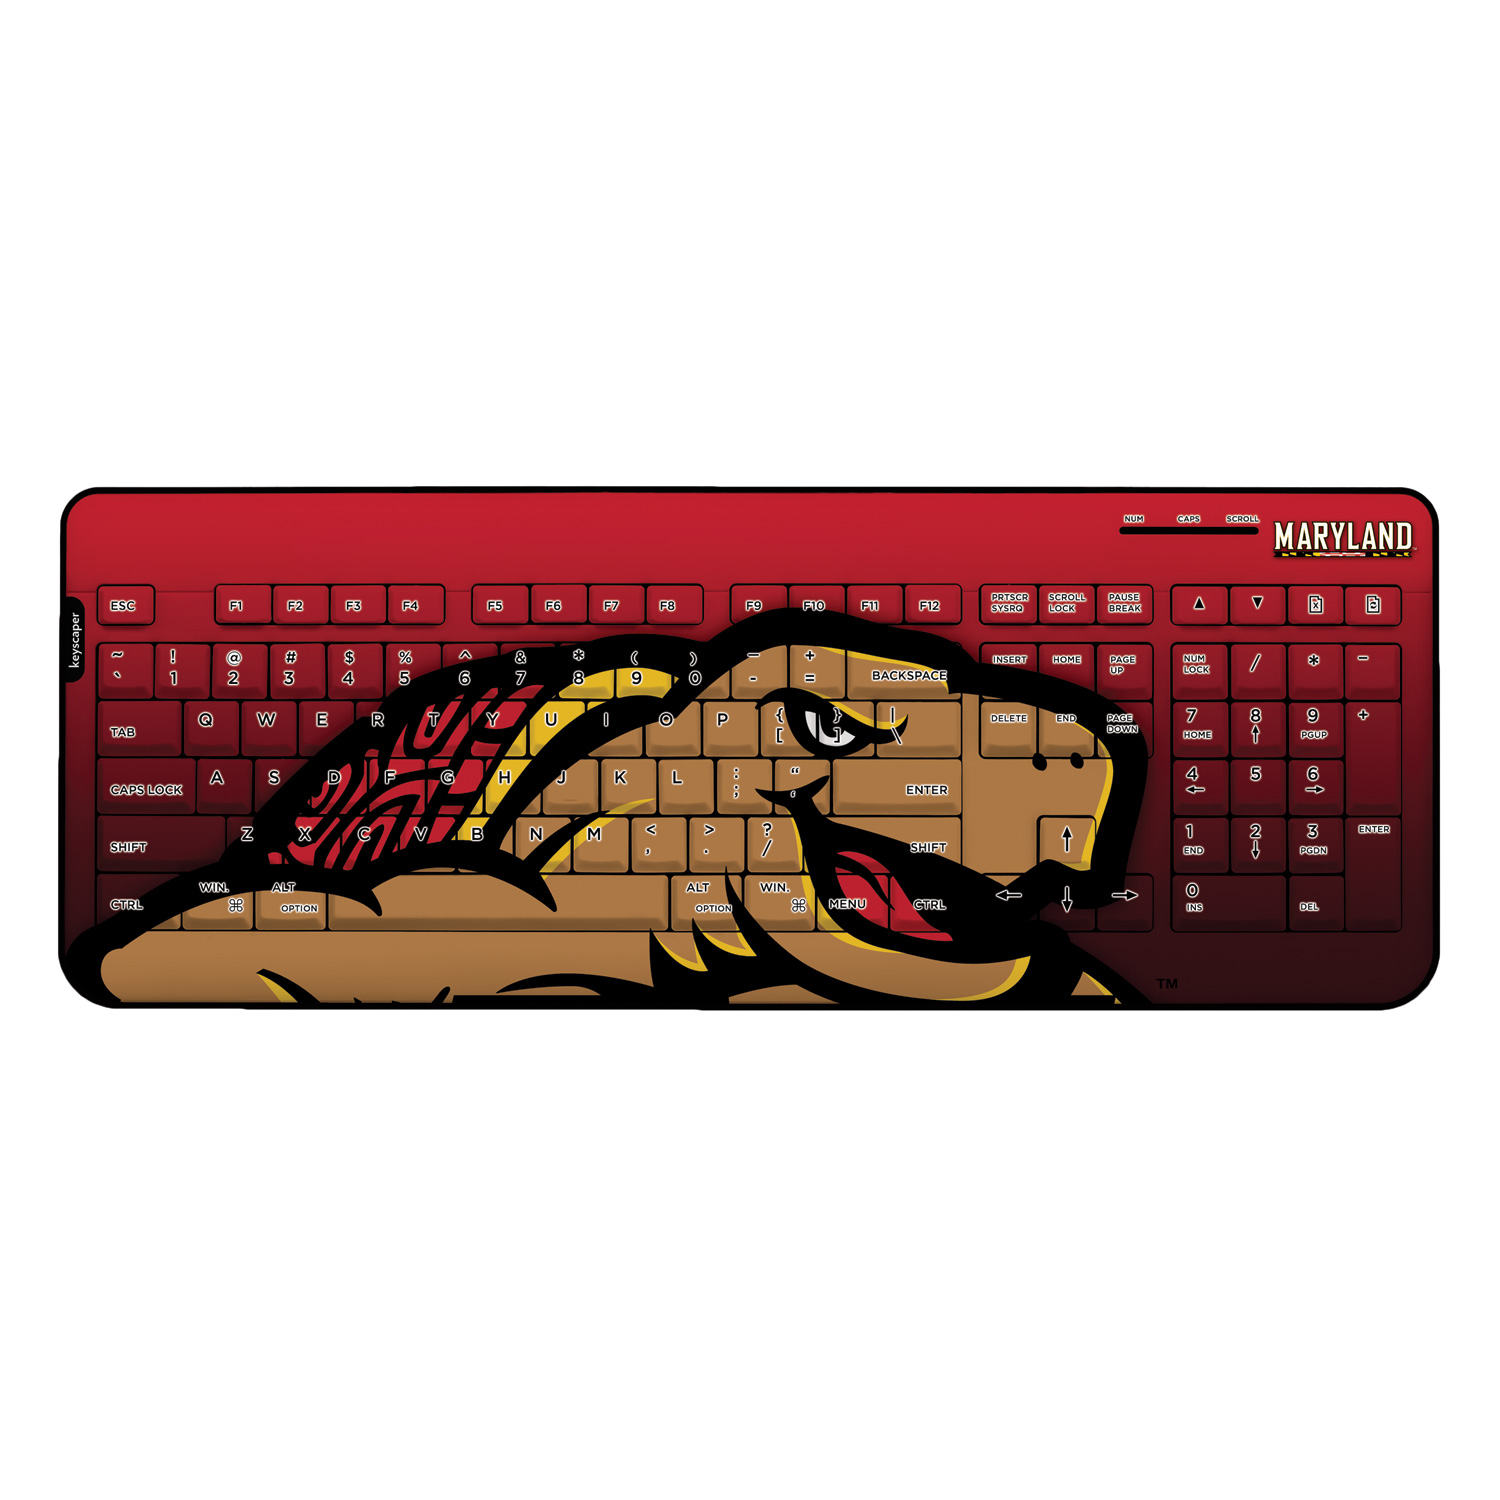 Maryland Terrapins Wireless USB Keyboard NCAA